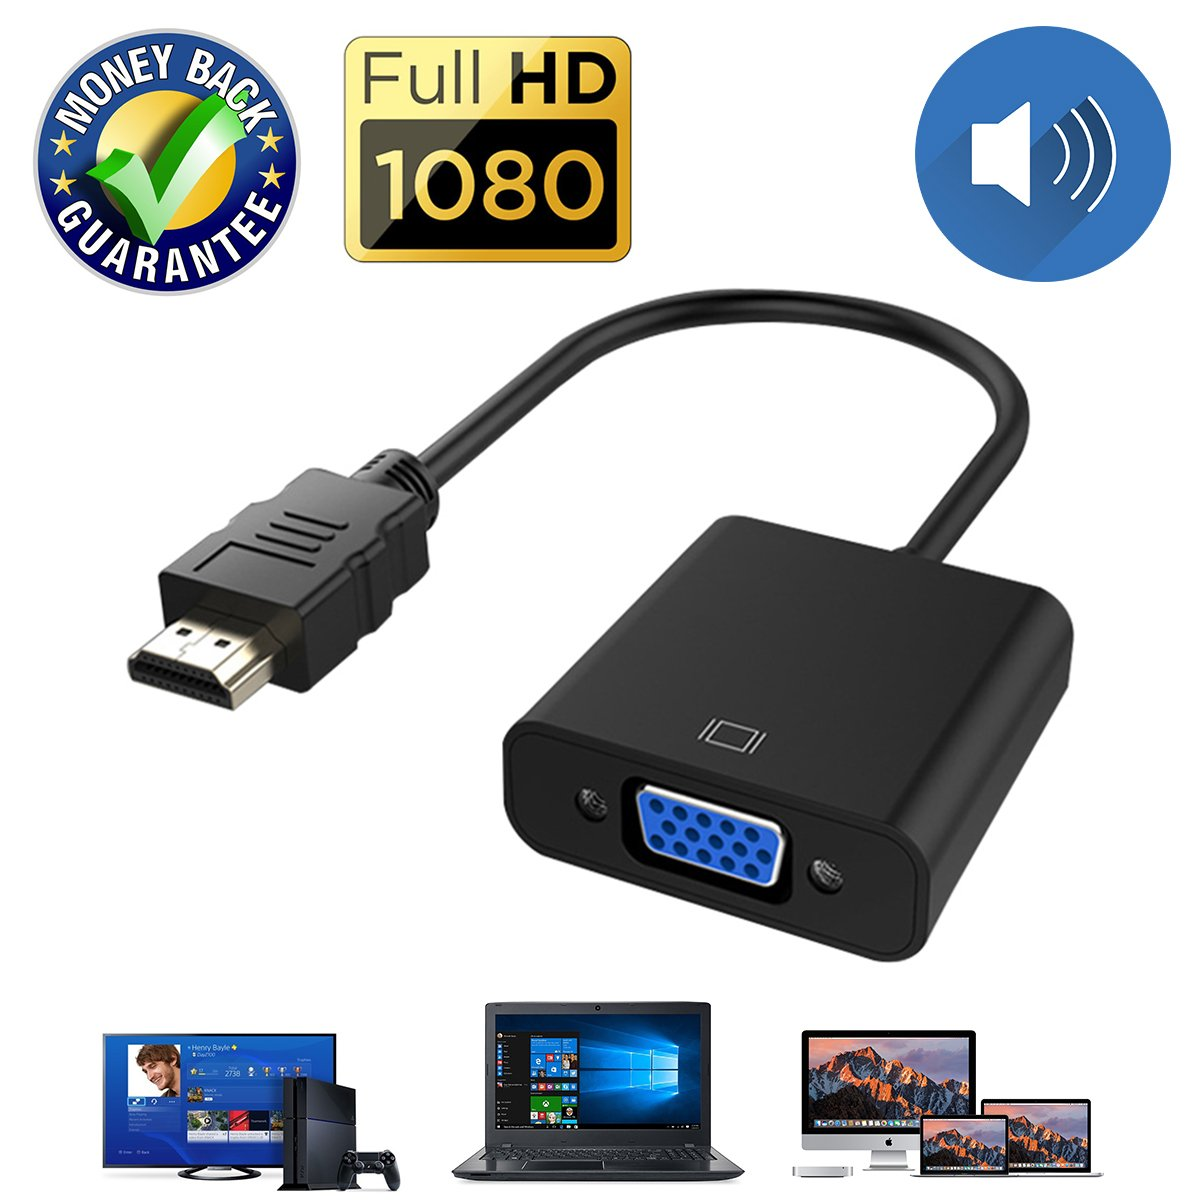 Cheap Vga Cord With Audio Find Deals On Line At Full Hd 1080p Hdmi Male To And Adapter For Hdtv Monitor Projector Konverter Kabel Get Quotations Cable Converter 15 Pin D Sub Gold